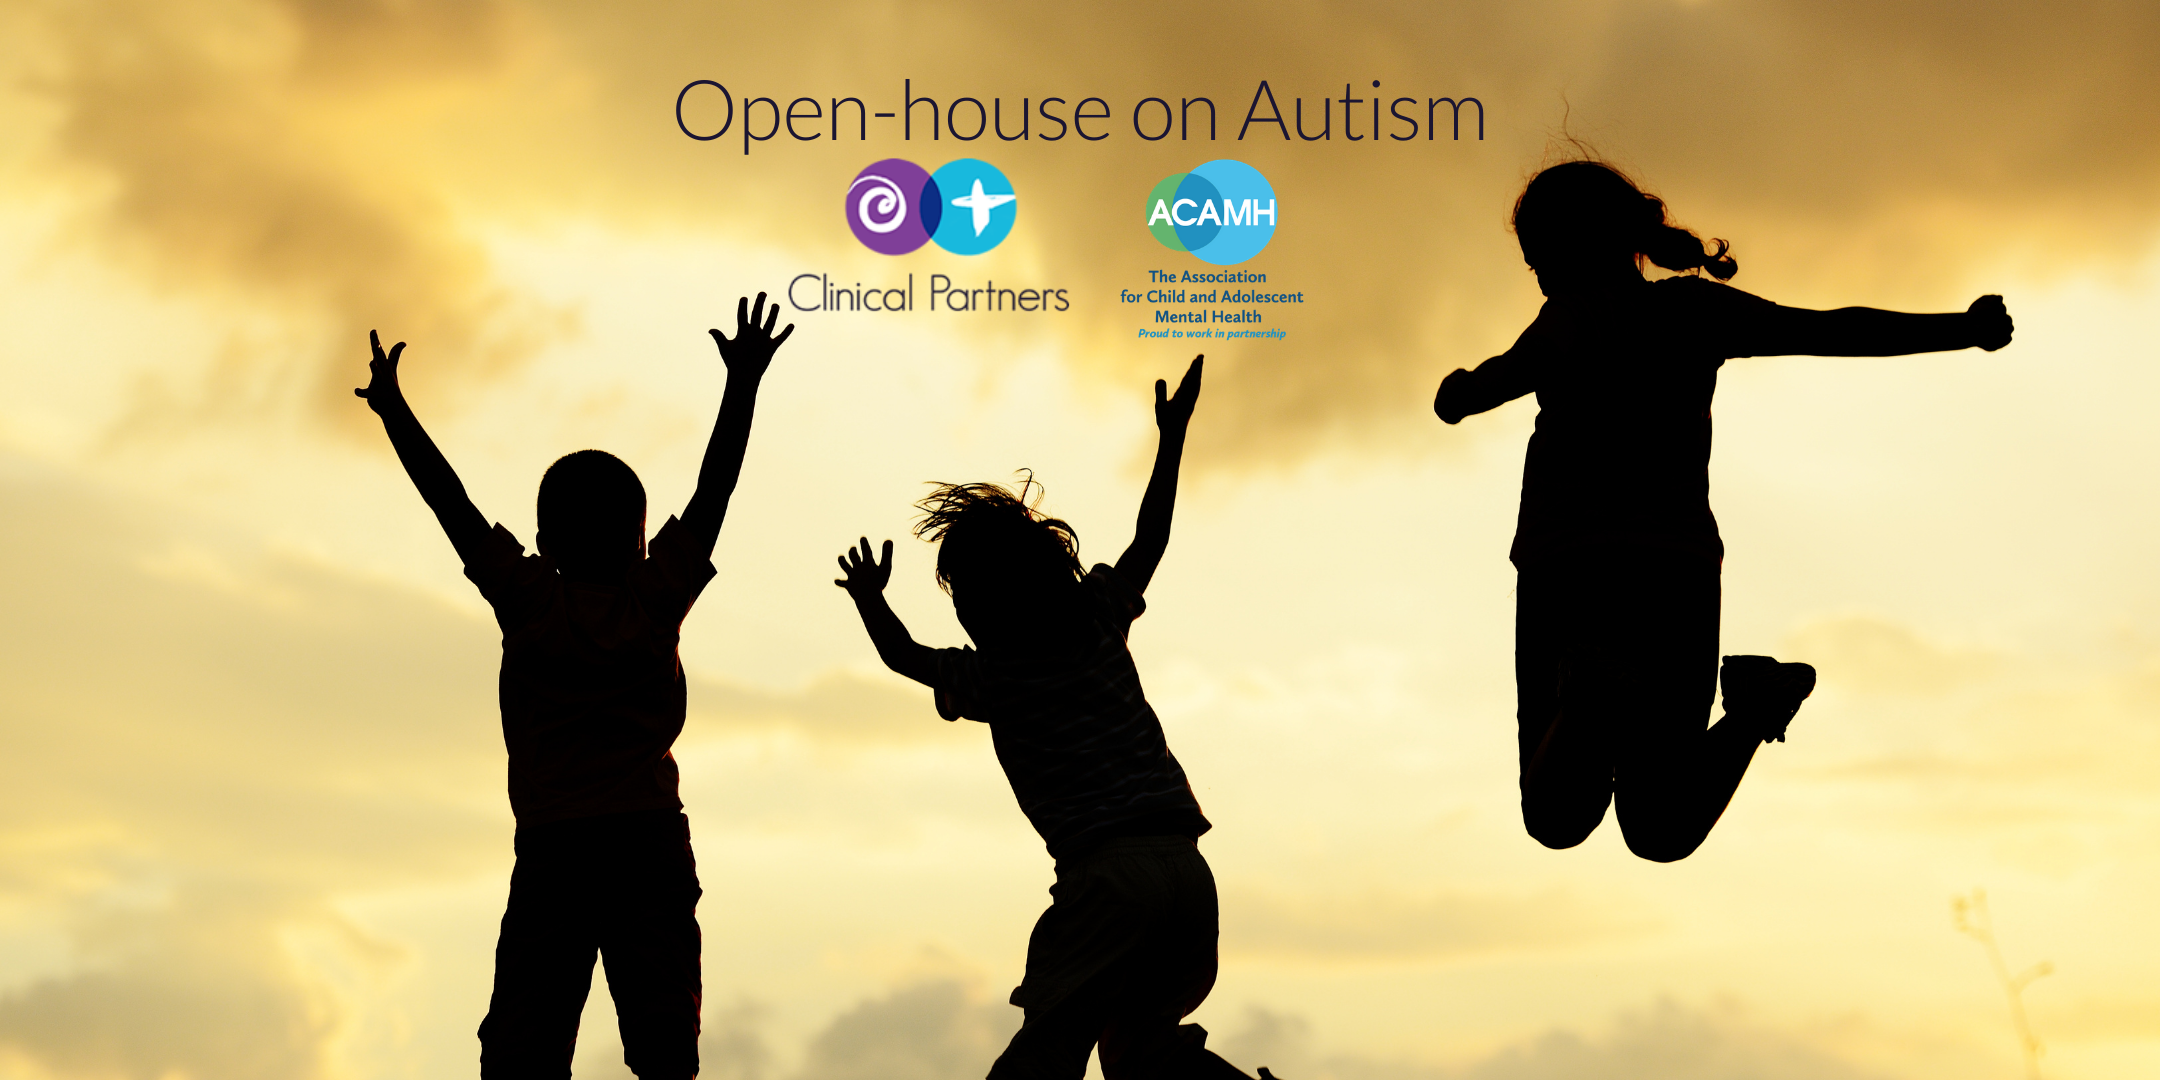 Open House on Autism Meltdowns and Emotions